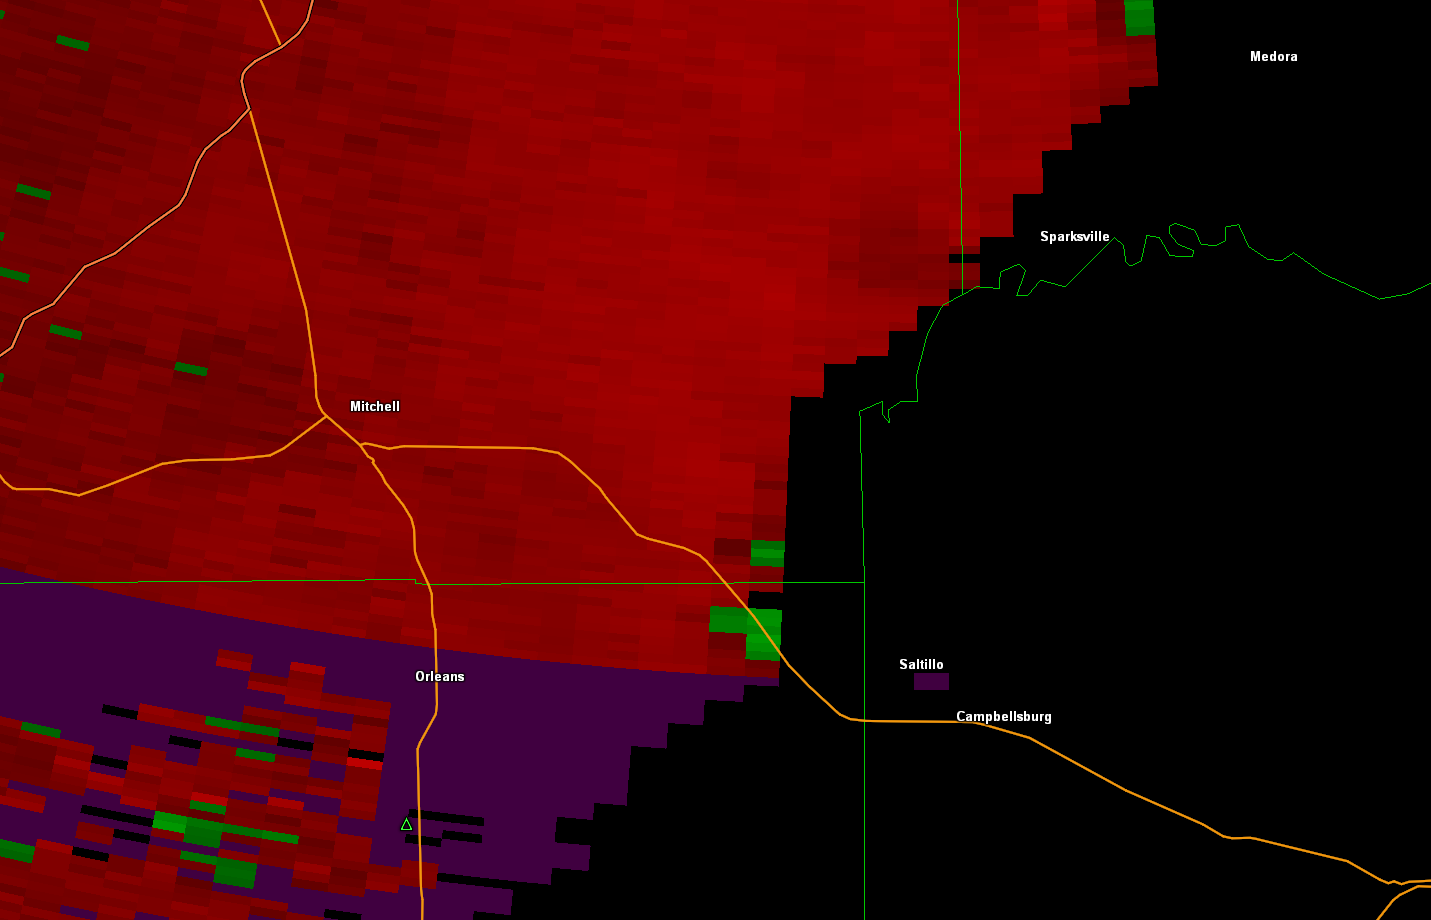 Velocity Image of Lawrence Co Tornado